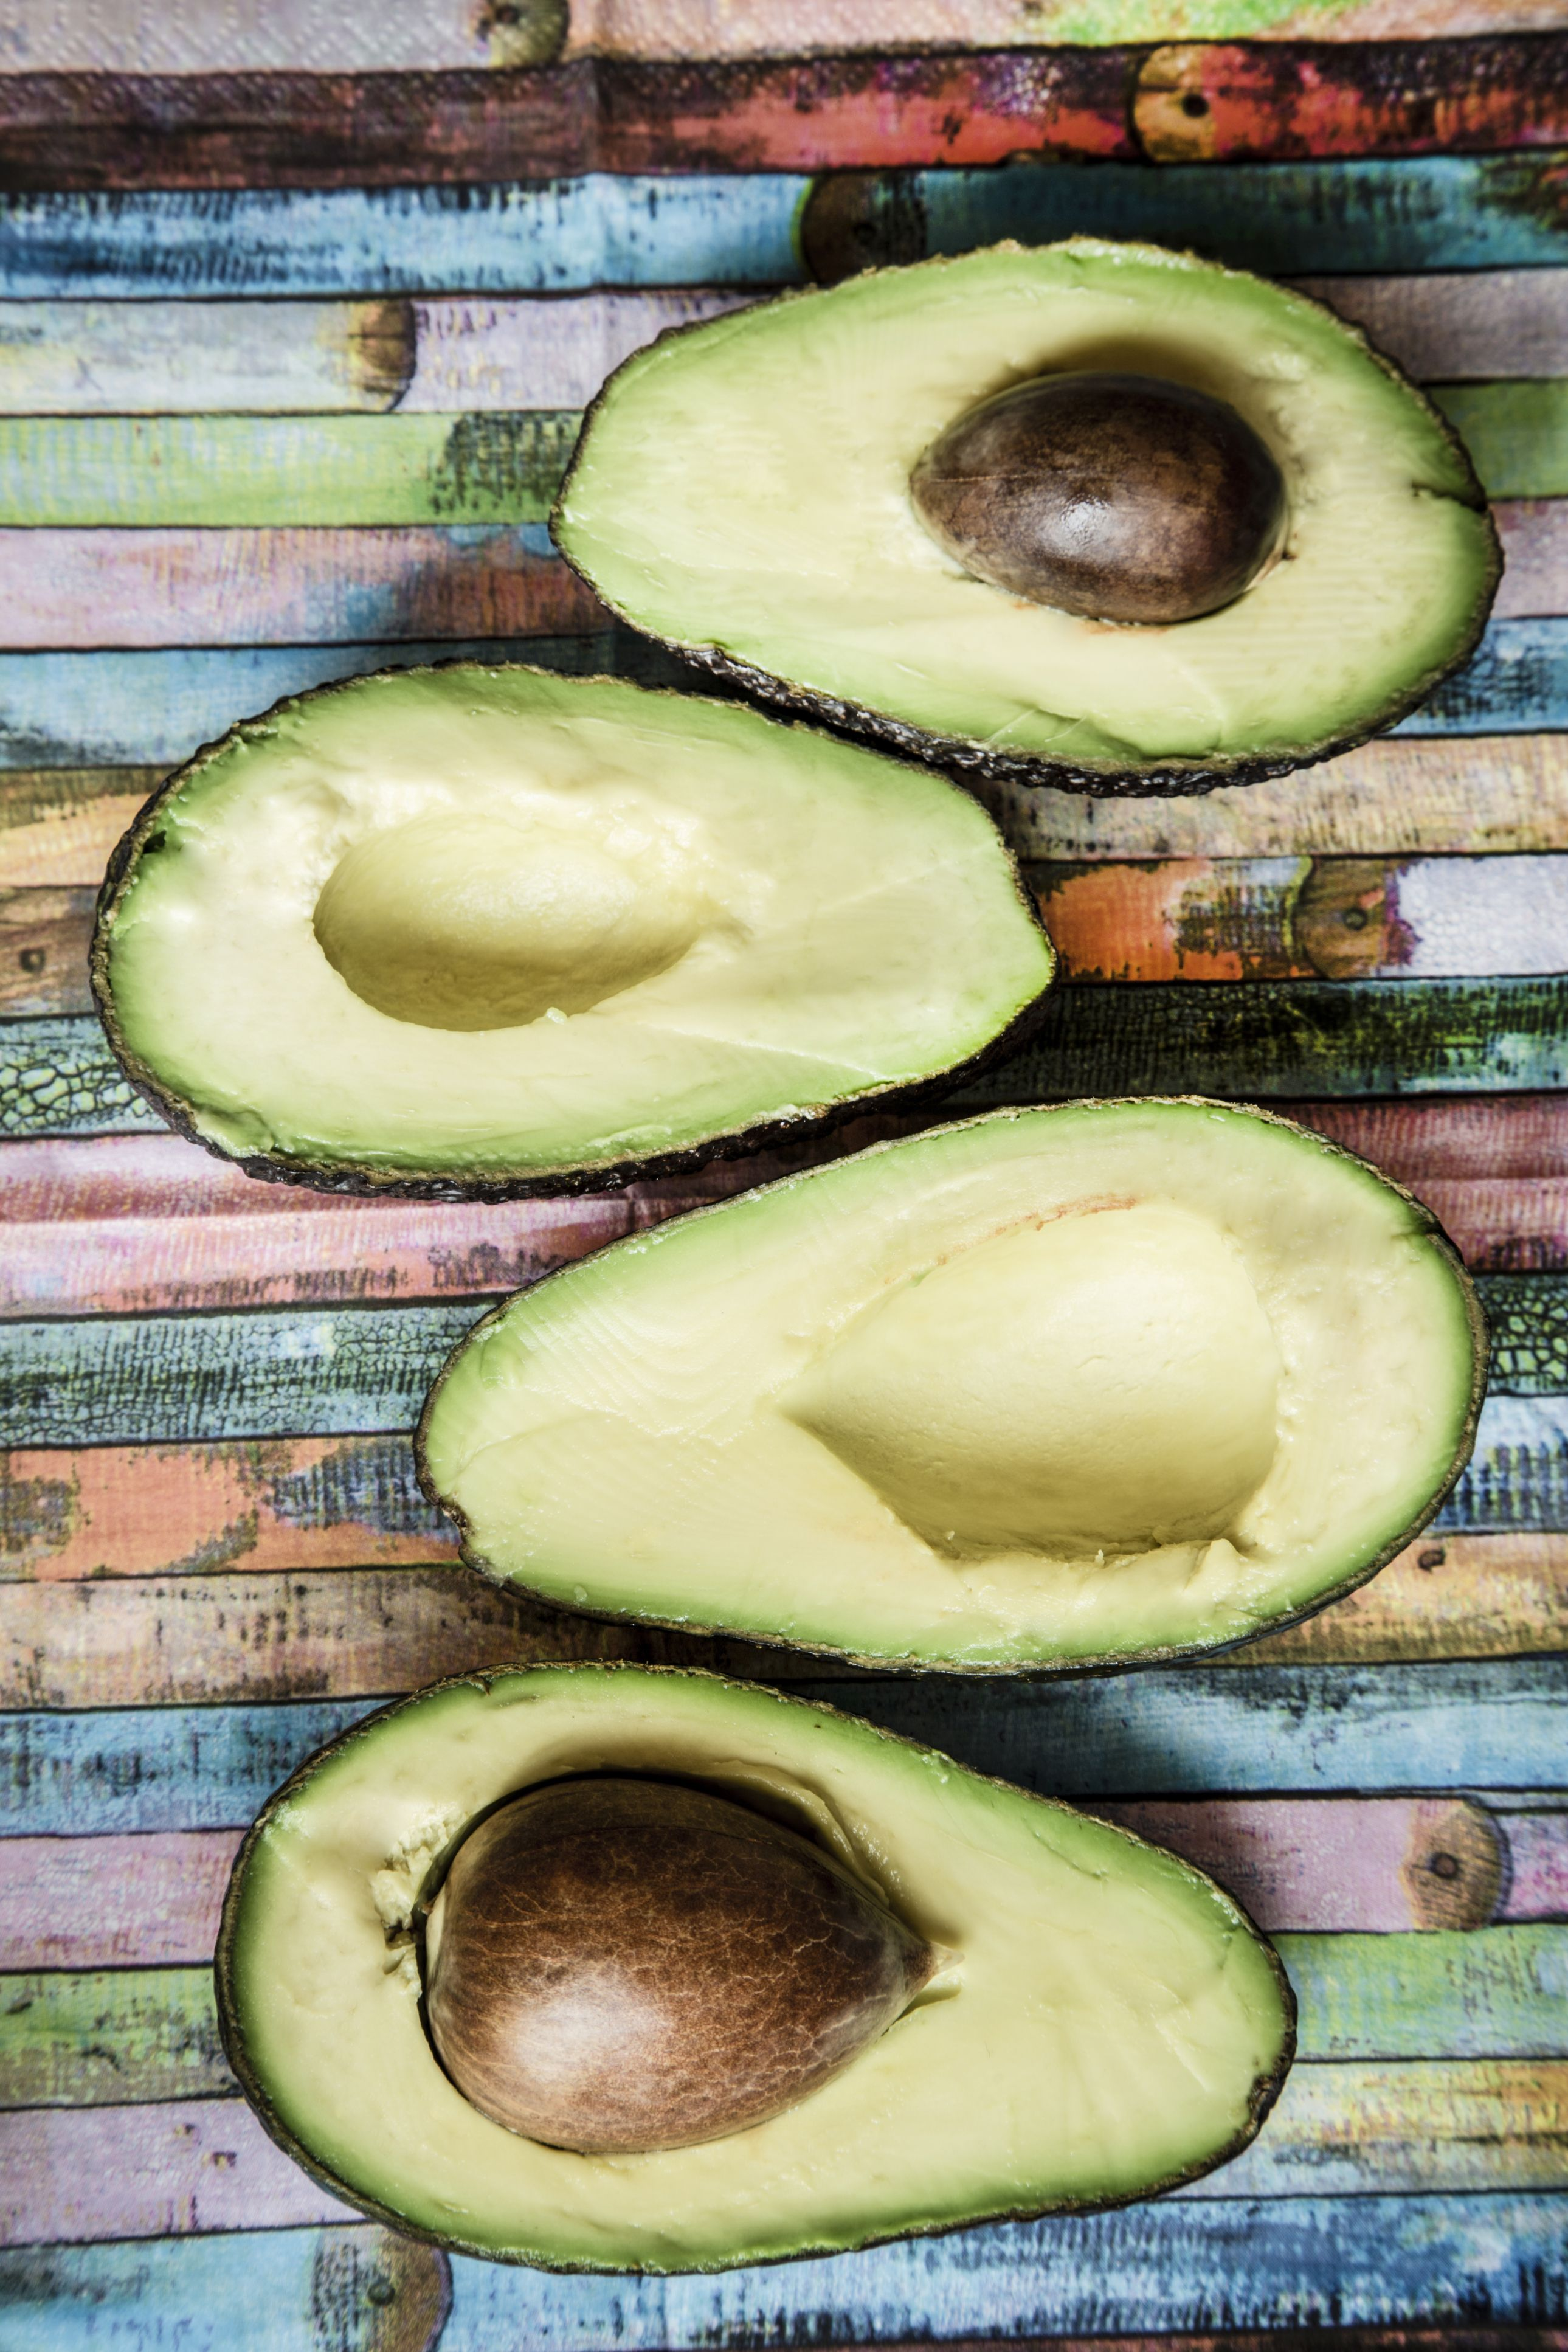 Riveting Foods Dogs Eat Dangerous Foods That Can Kill Dogs Can Dogs Eat Avocado Seeds Can Dogs Eat Avocado Reddit bark post Can Dogs Eat Avocado